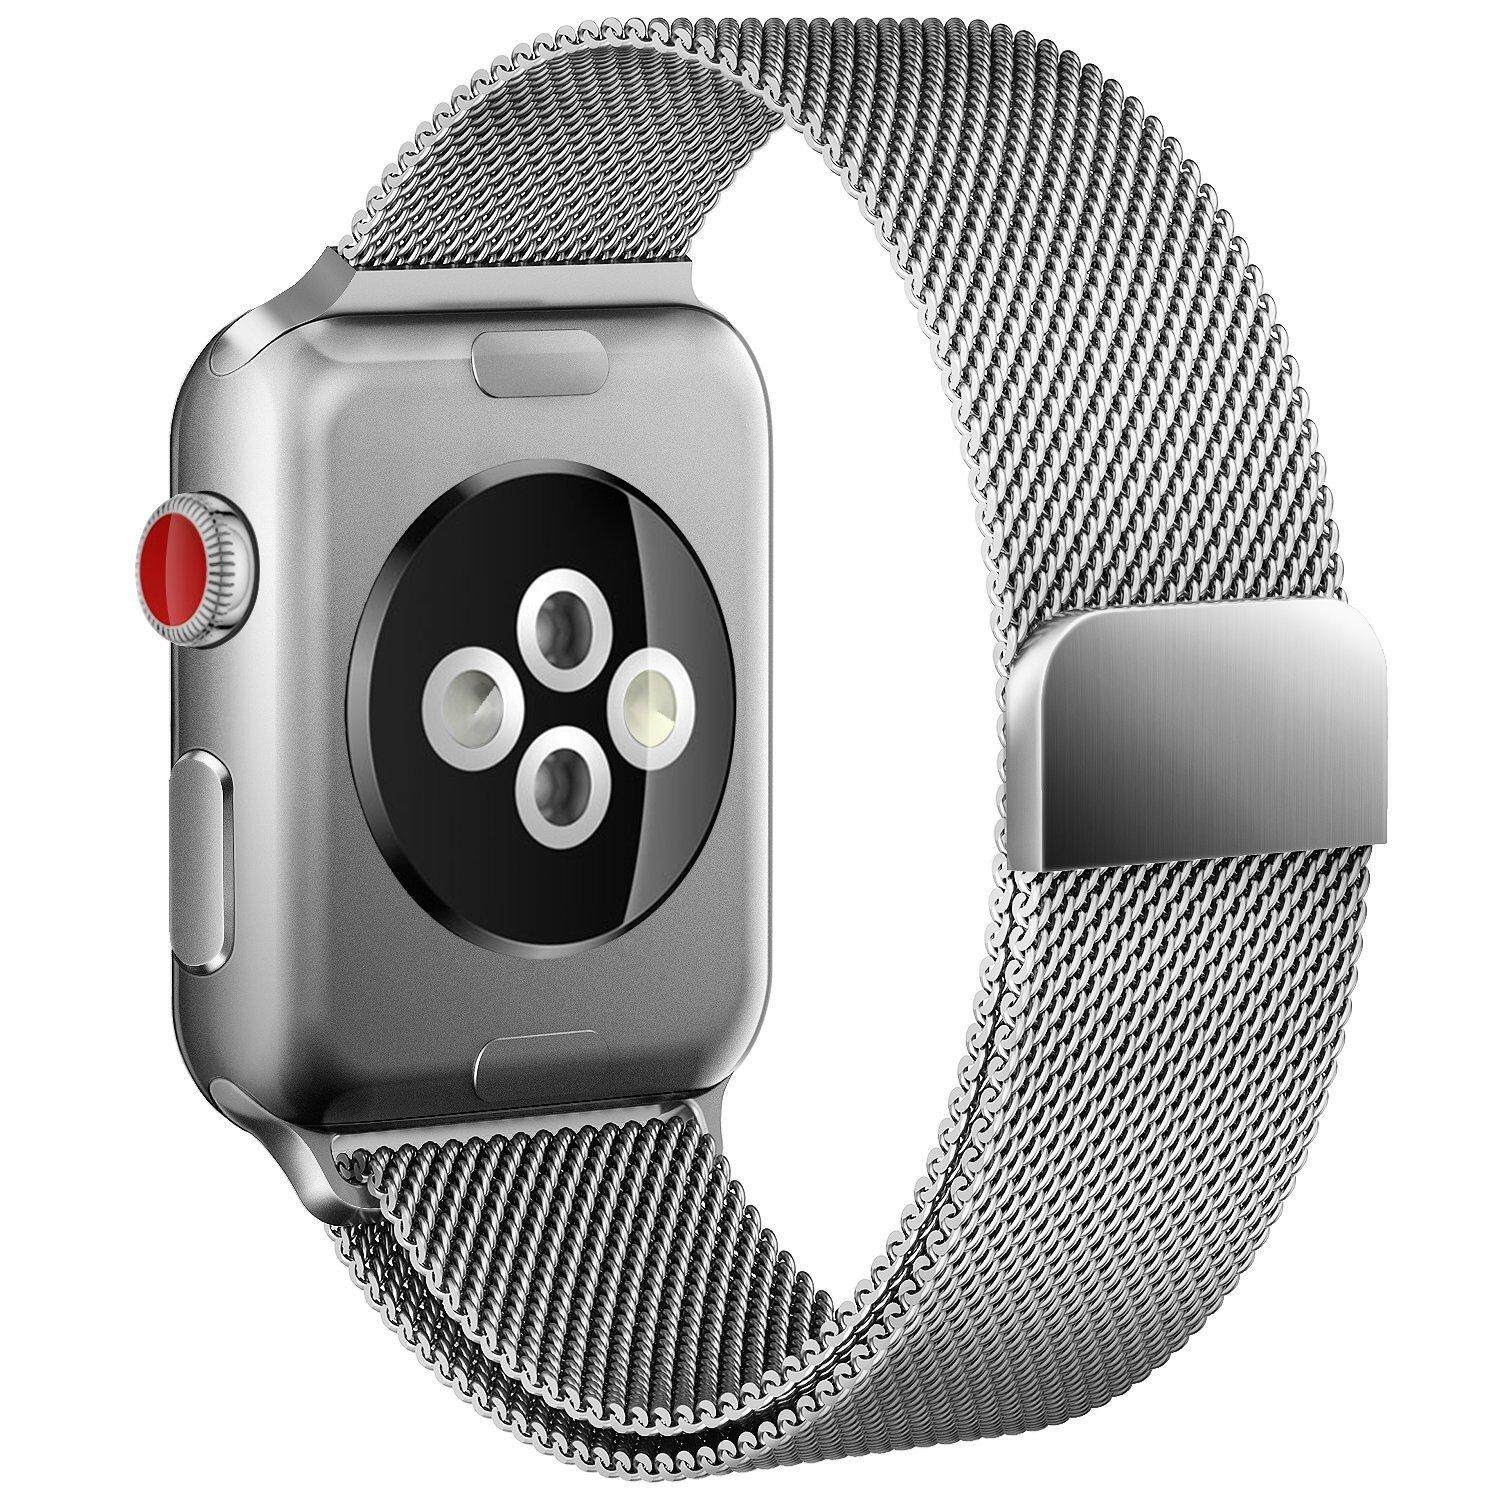 Compatible Bands For Apple Watch Series 4 3 2 1 All Models, Loop Sport Straps With Magnetic Closure For Iwatch Band 38mm 40mm 42mm 44mm By Evertoner.